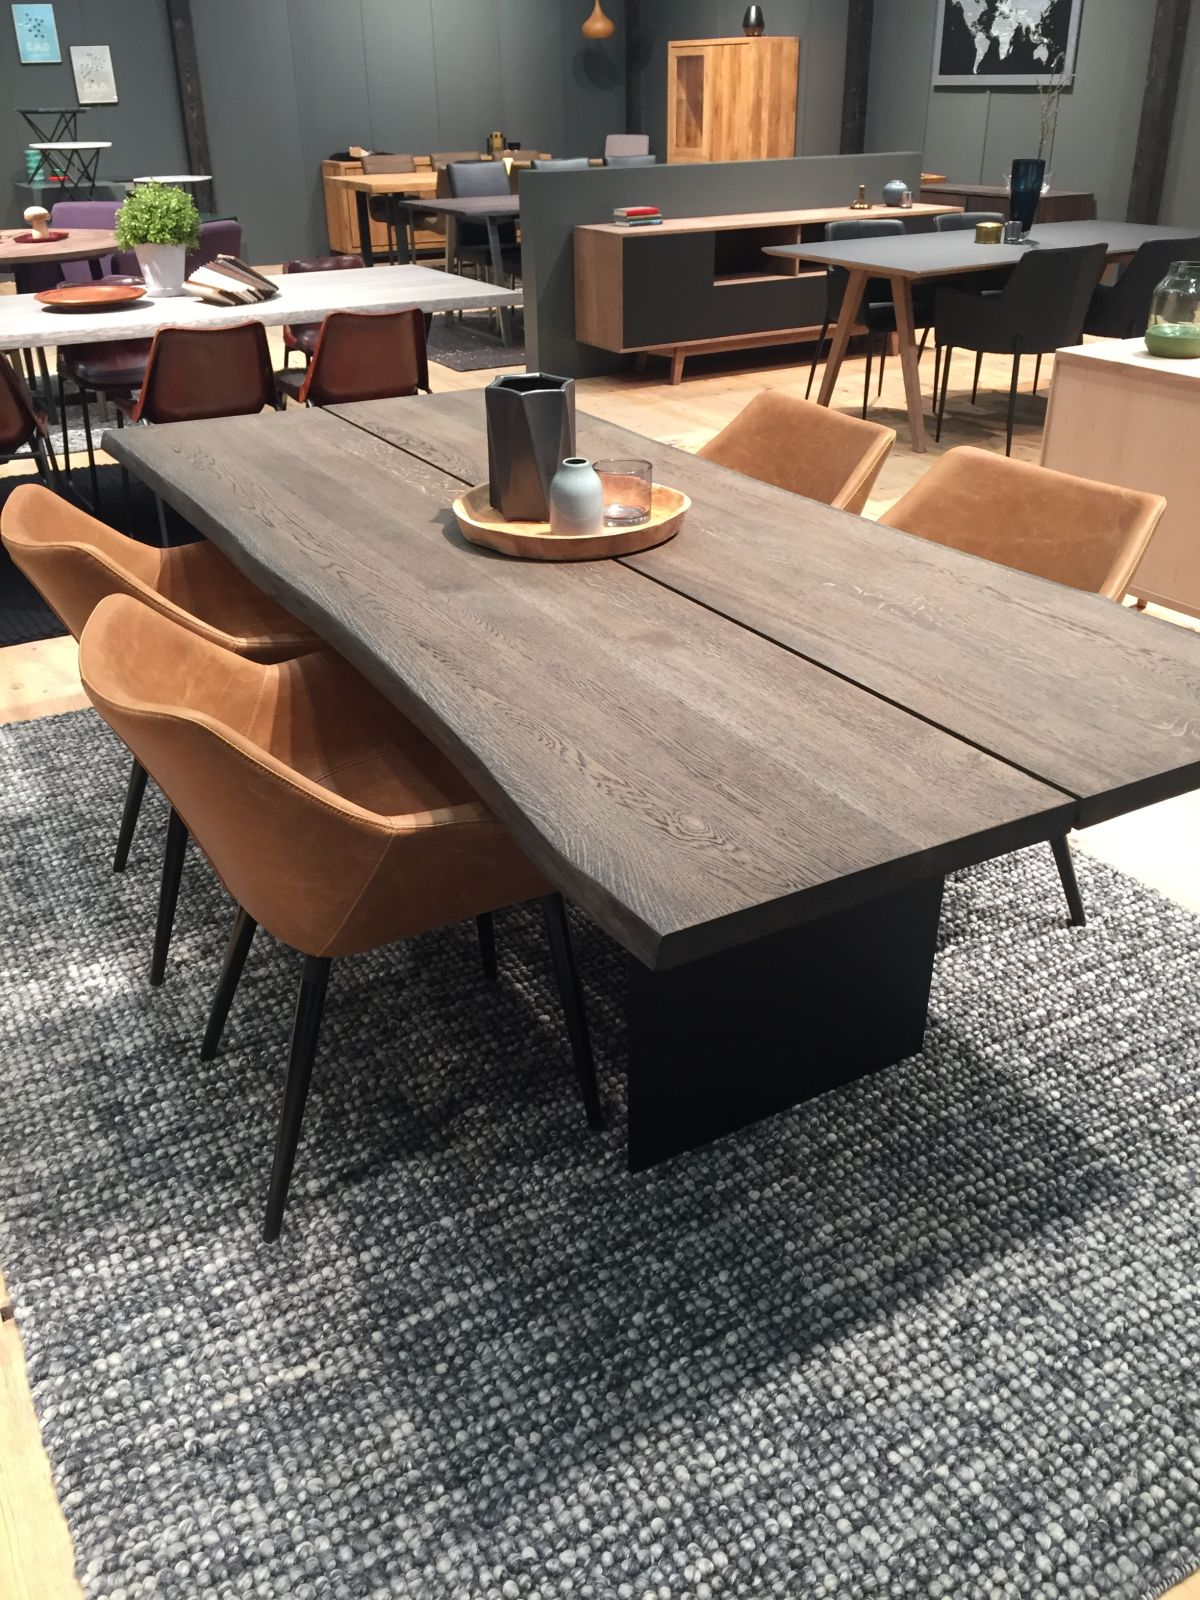 Modern Cutting Edge Wooden Table With Brown Leather Chairs